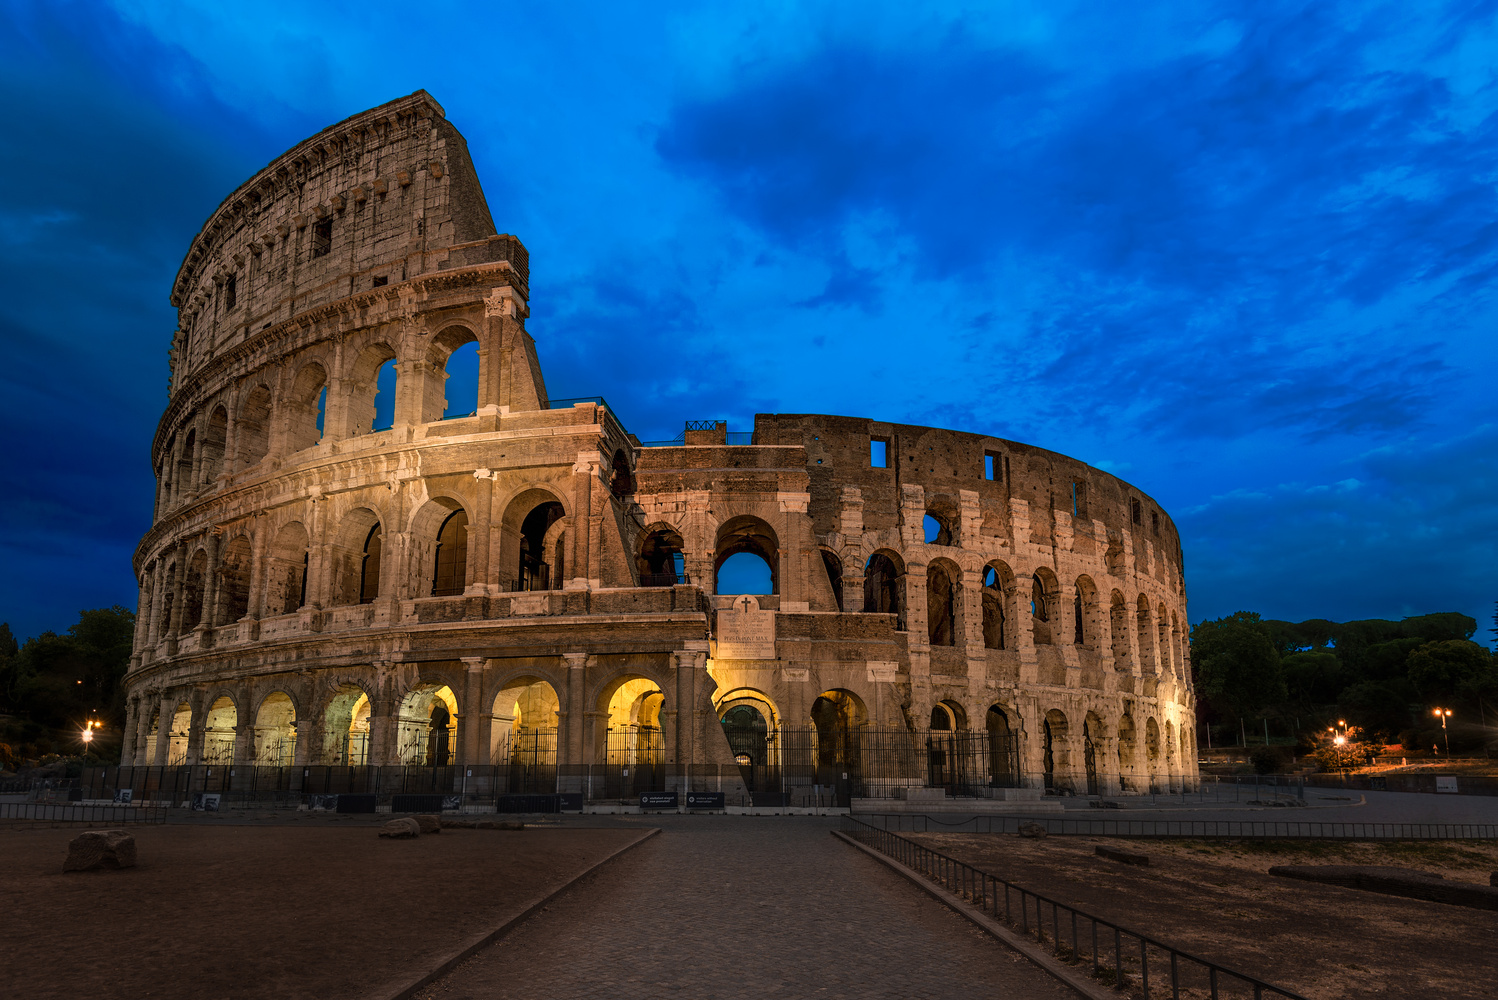 Colosseum by Chris Ward